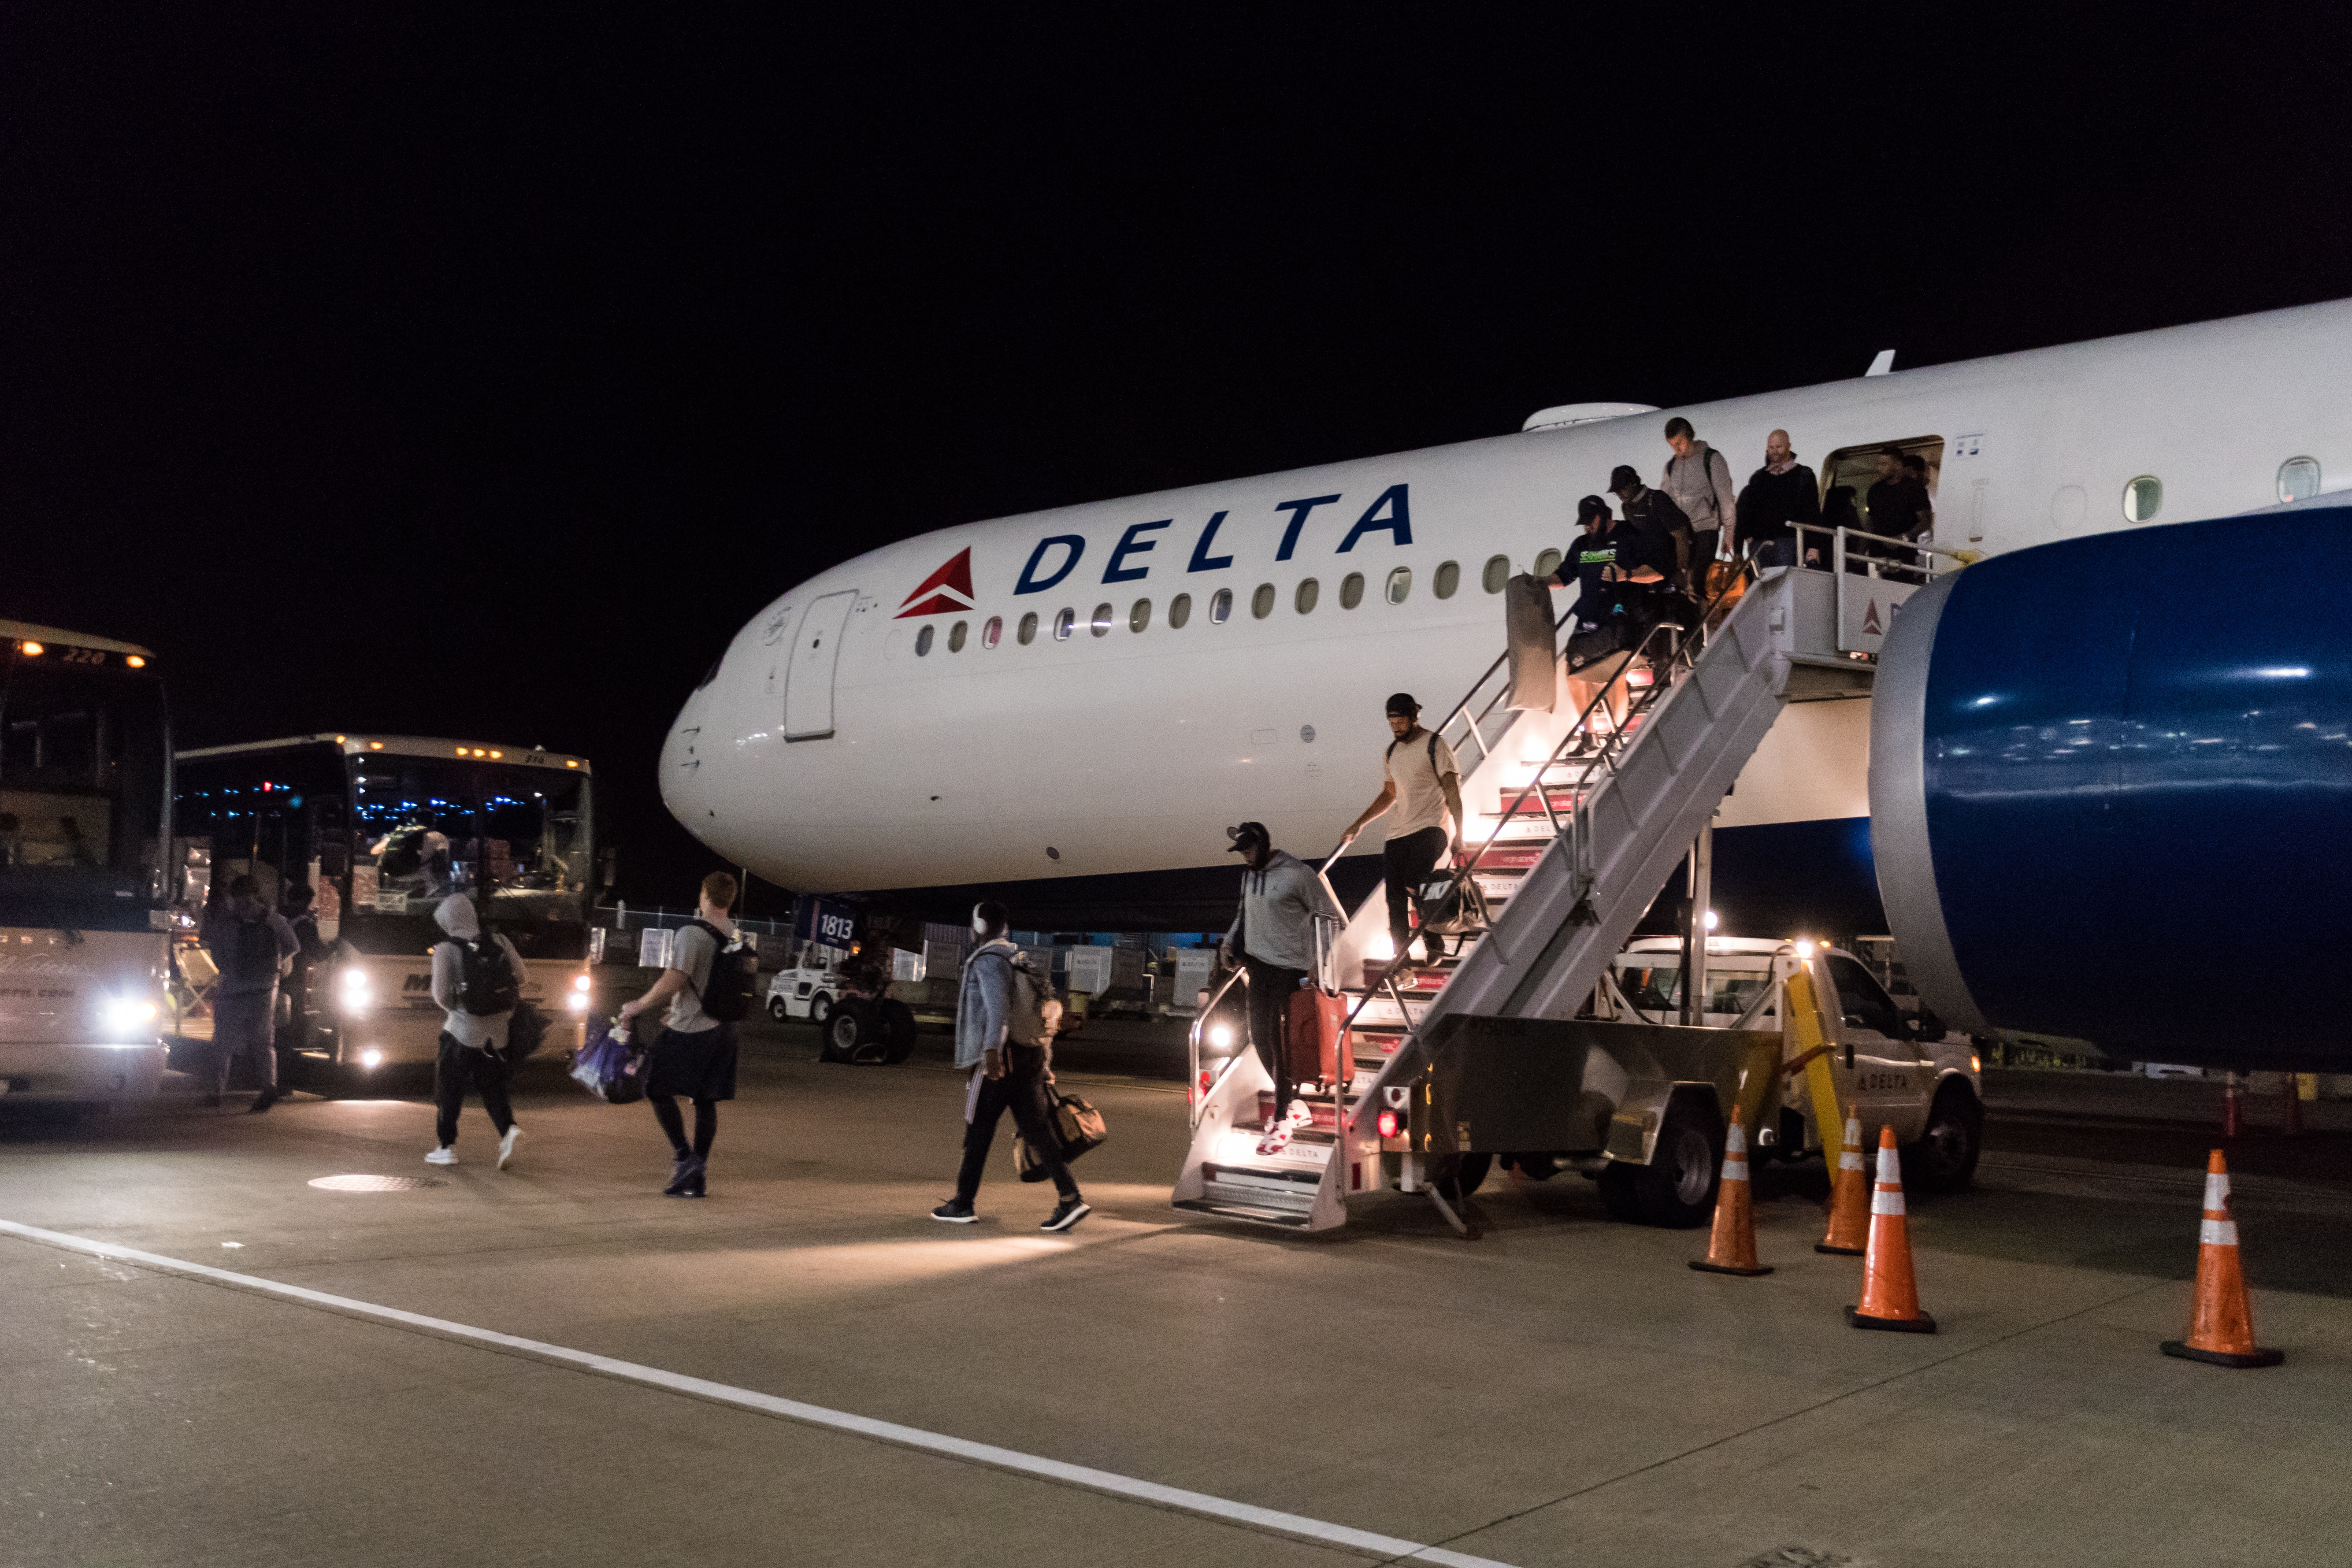 Seahawks team members deplaning from Delta jet